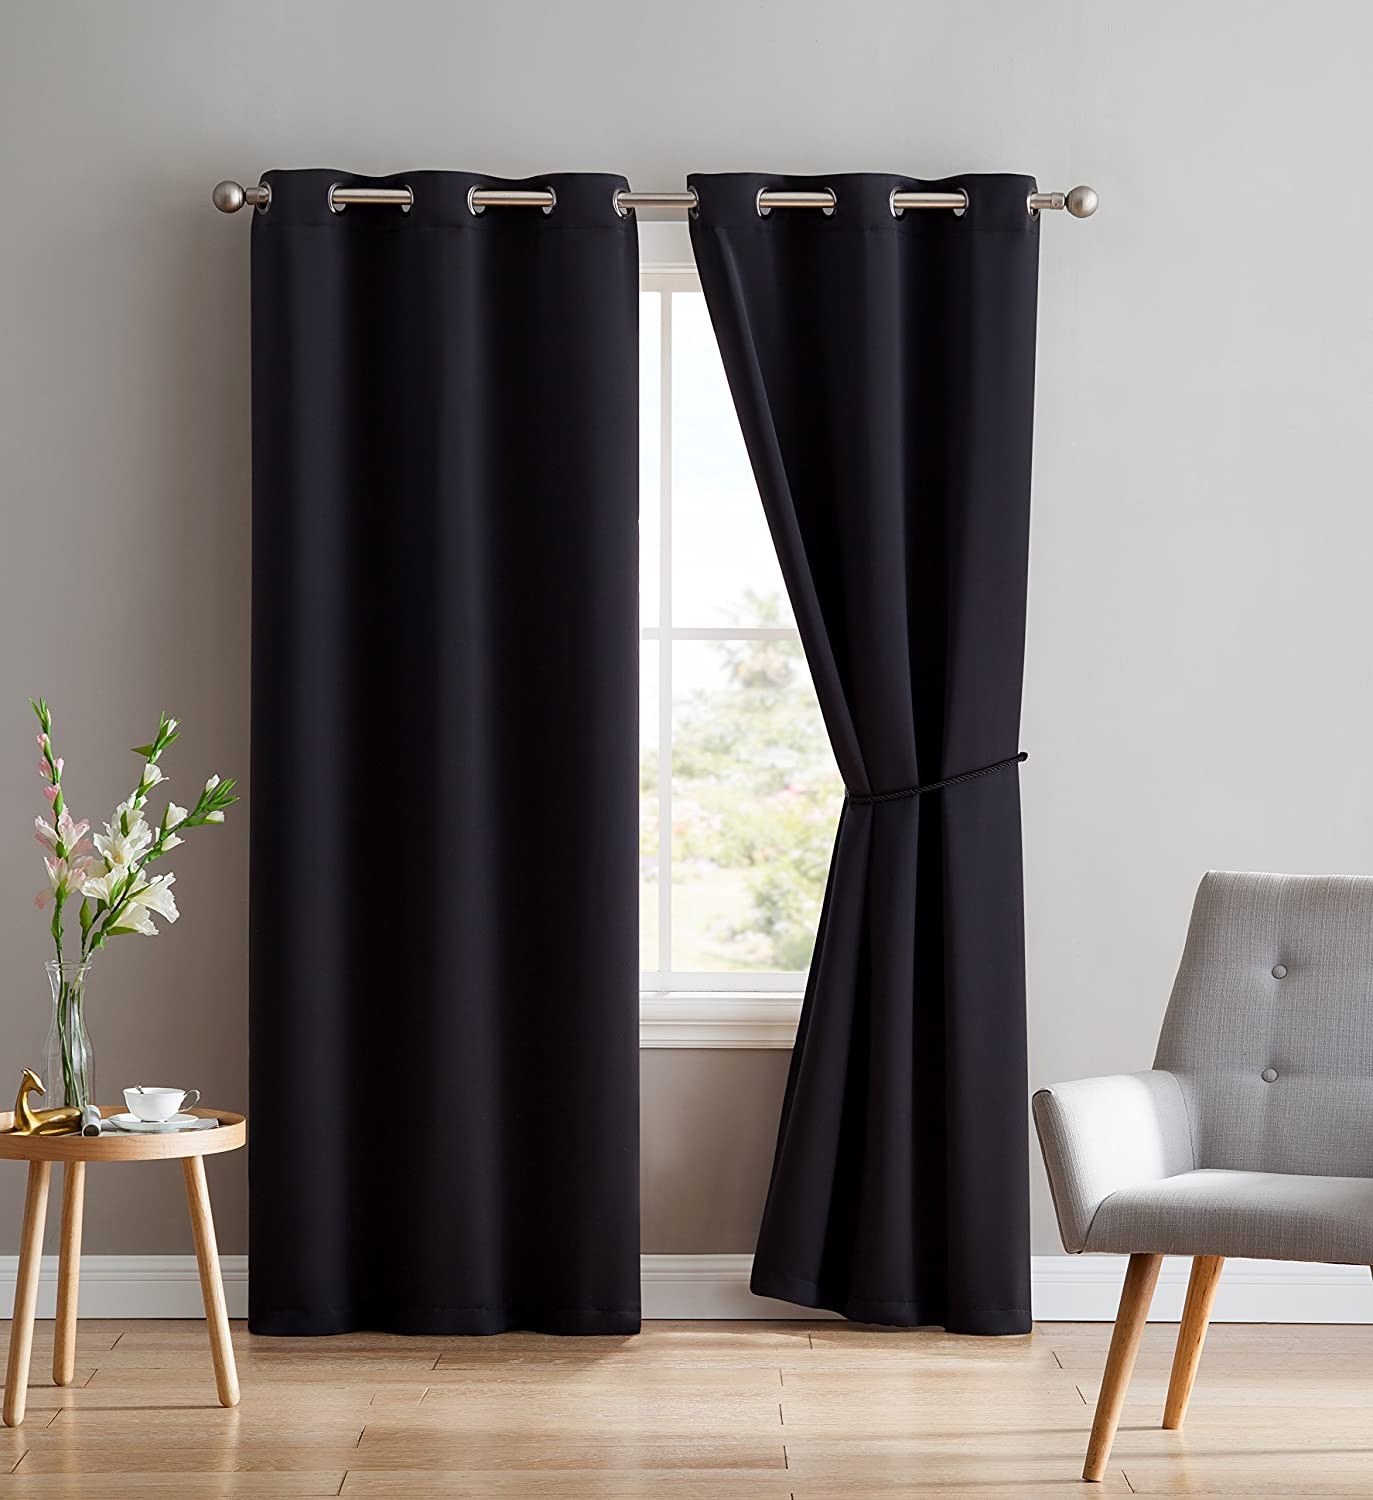 Nicole - 2 Premium Grommet Blackout Window Curtain Panels With Tiebacks Black